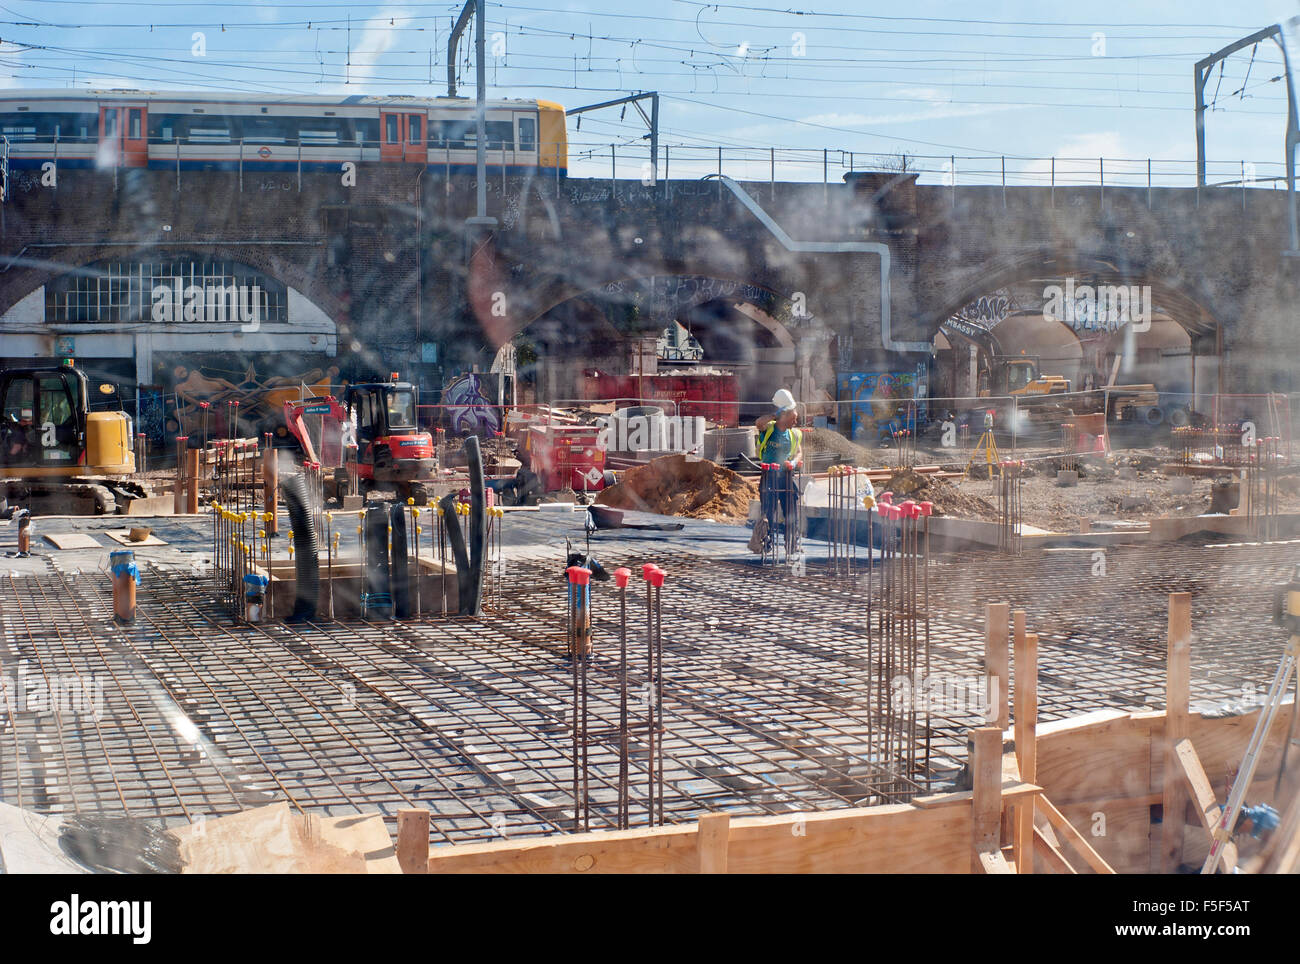 view through glass of building site distortion - Stock Image